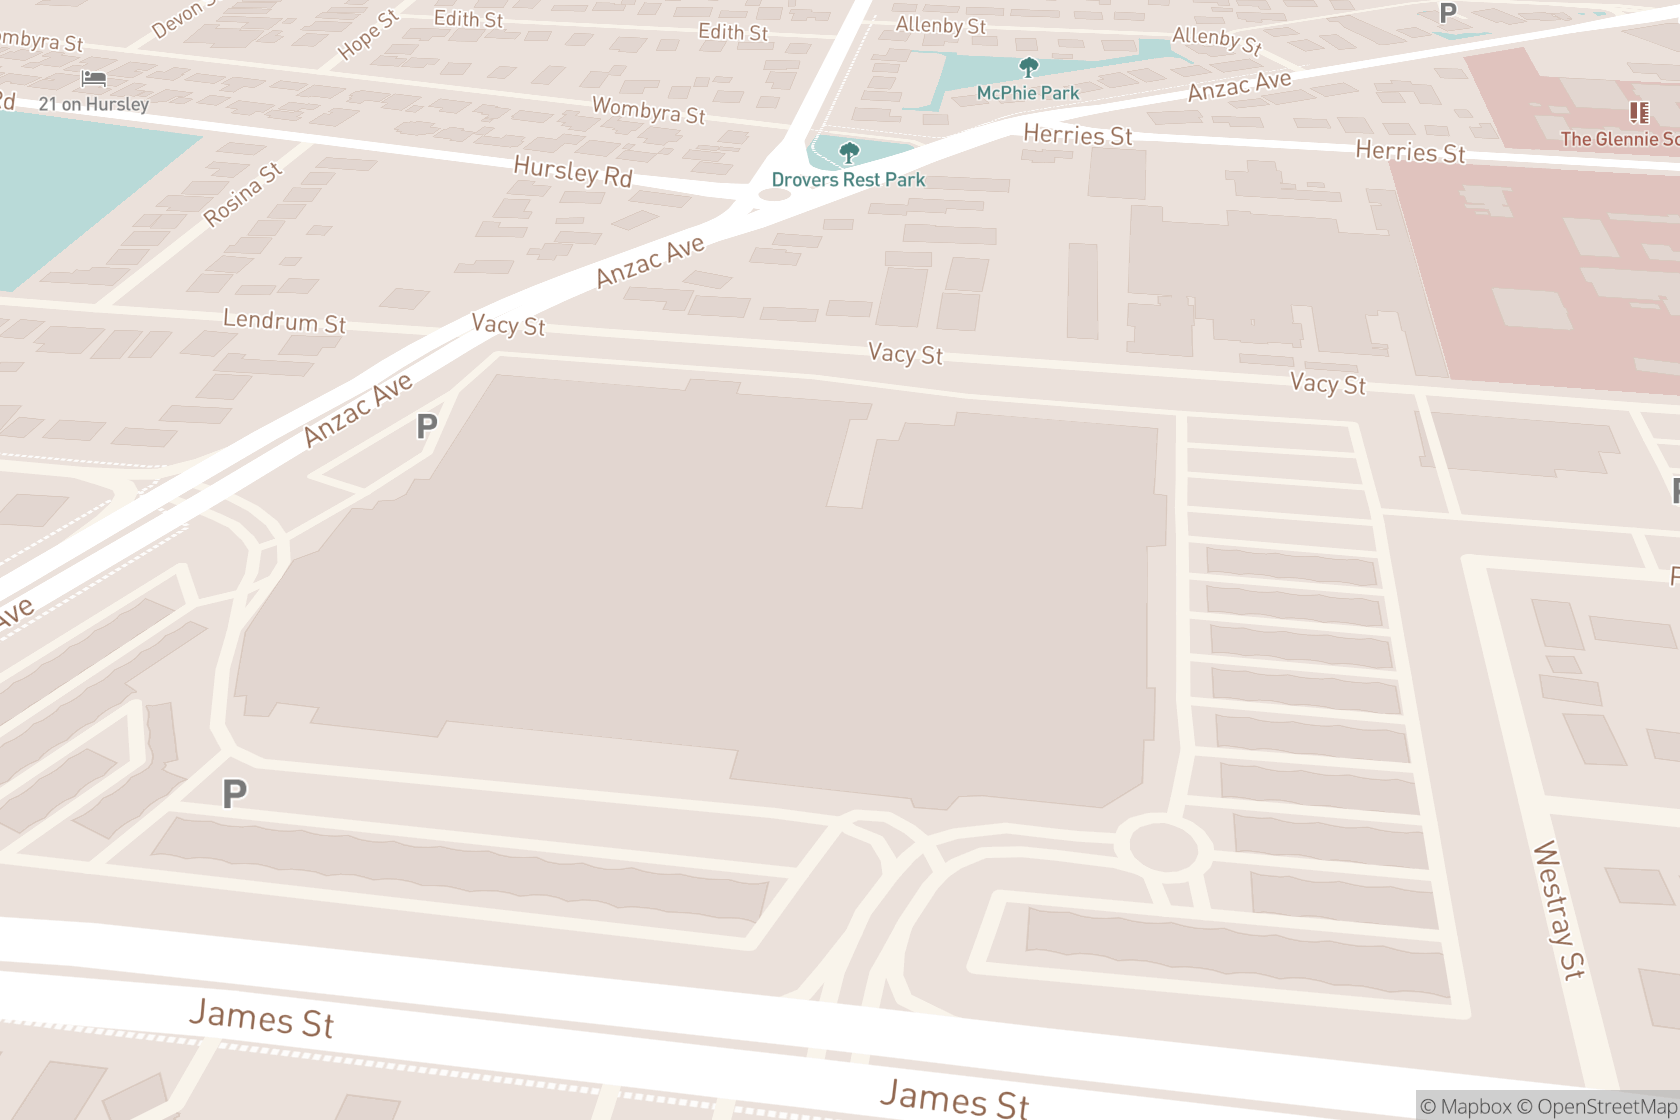 Supercuts Hairdressing map location